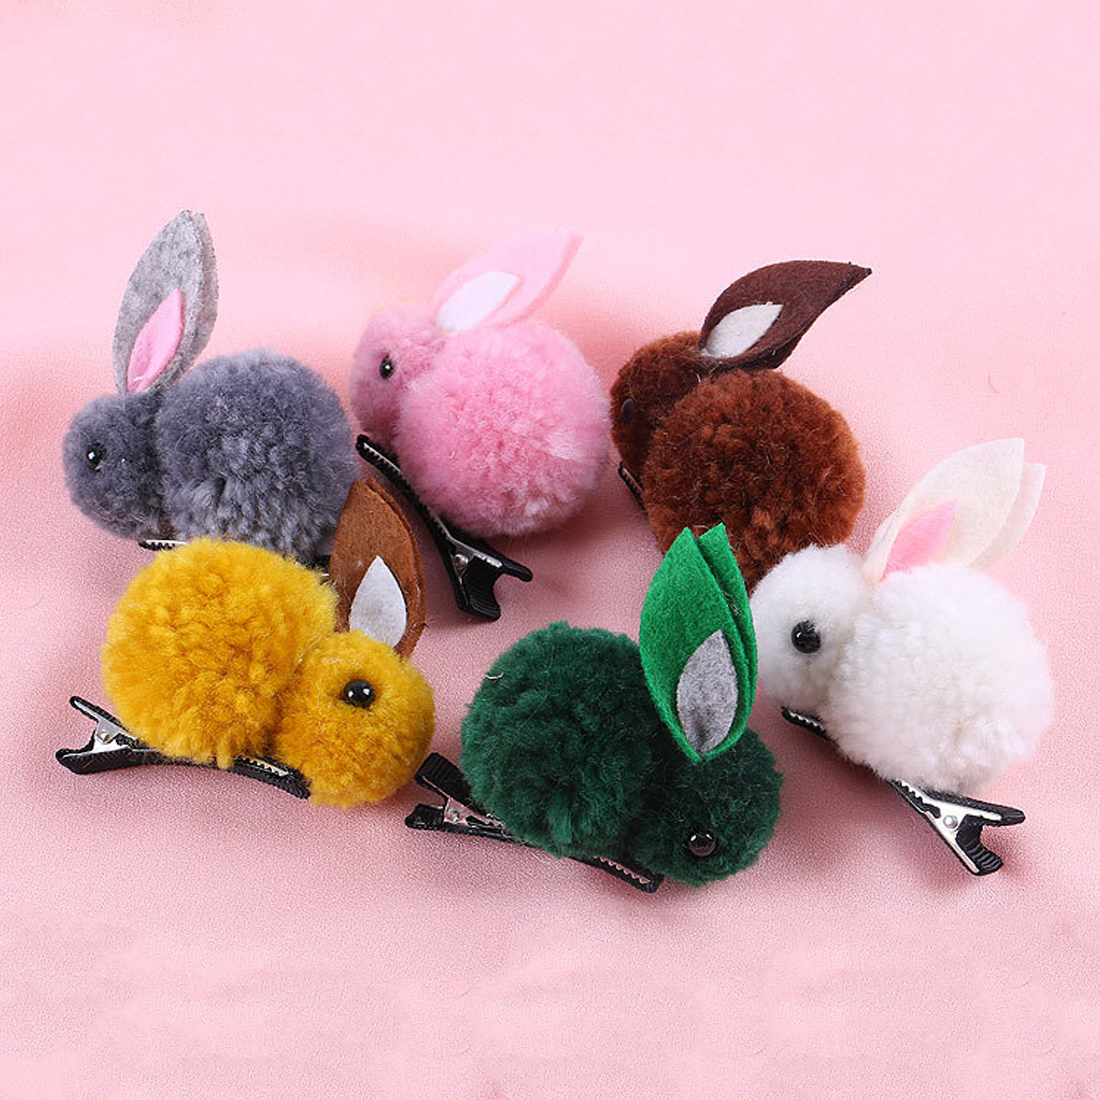 1pcs 3D Hair Clip For Kids Cute Girls Rabbit Hair Popular Pliers Hair Accessories